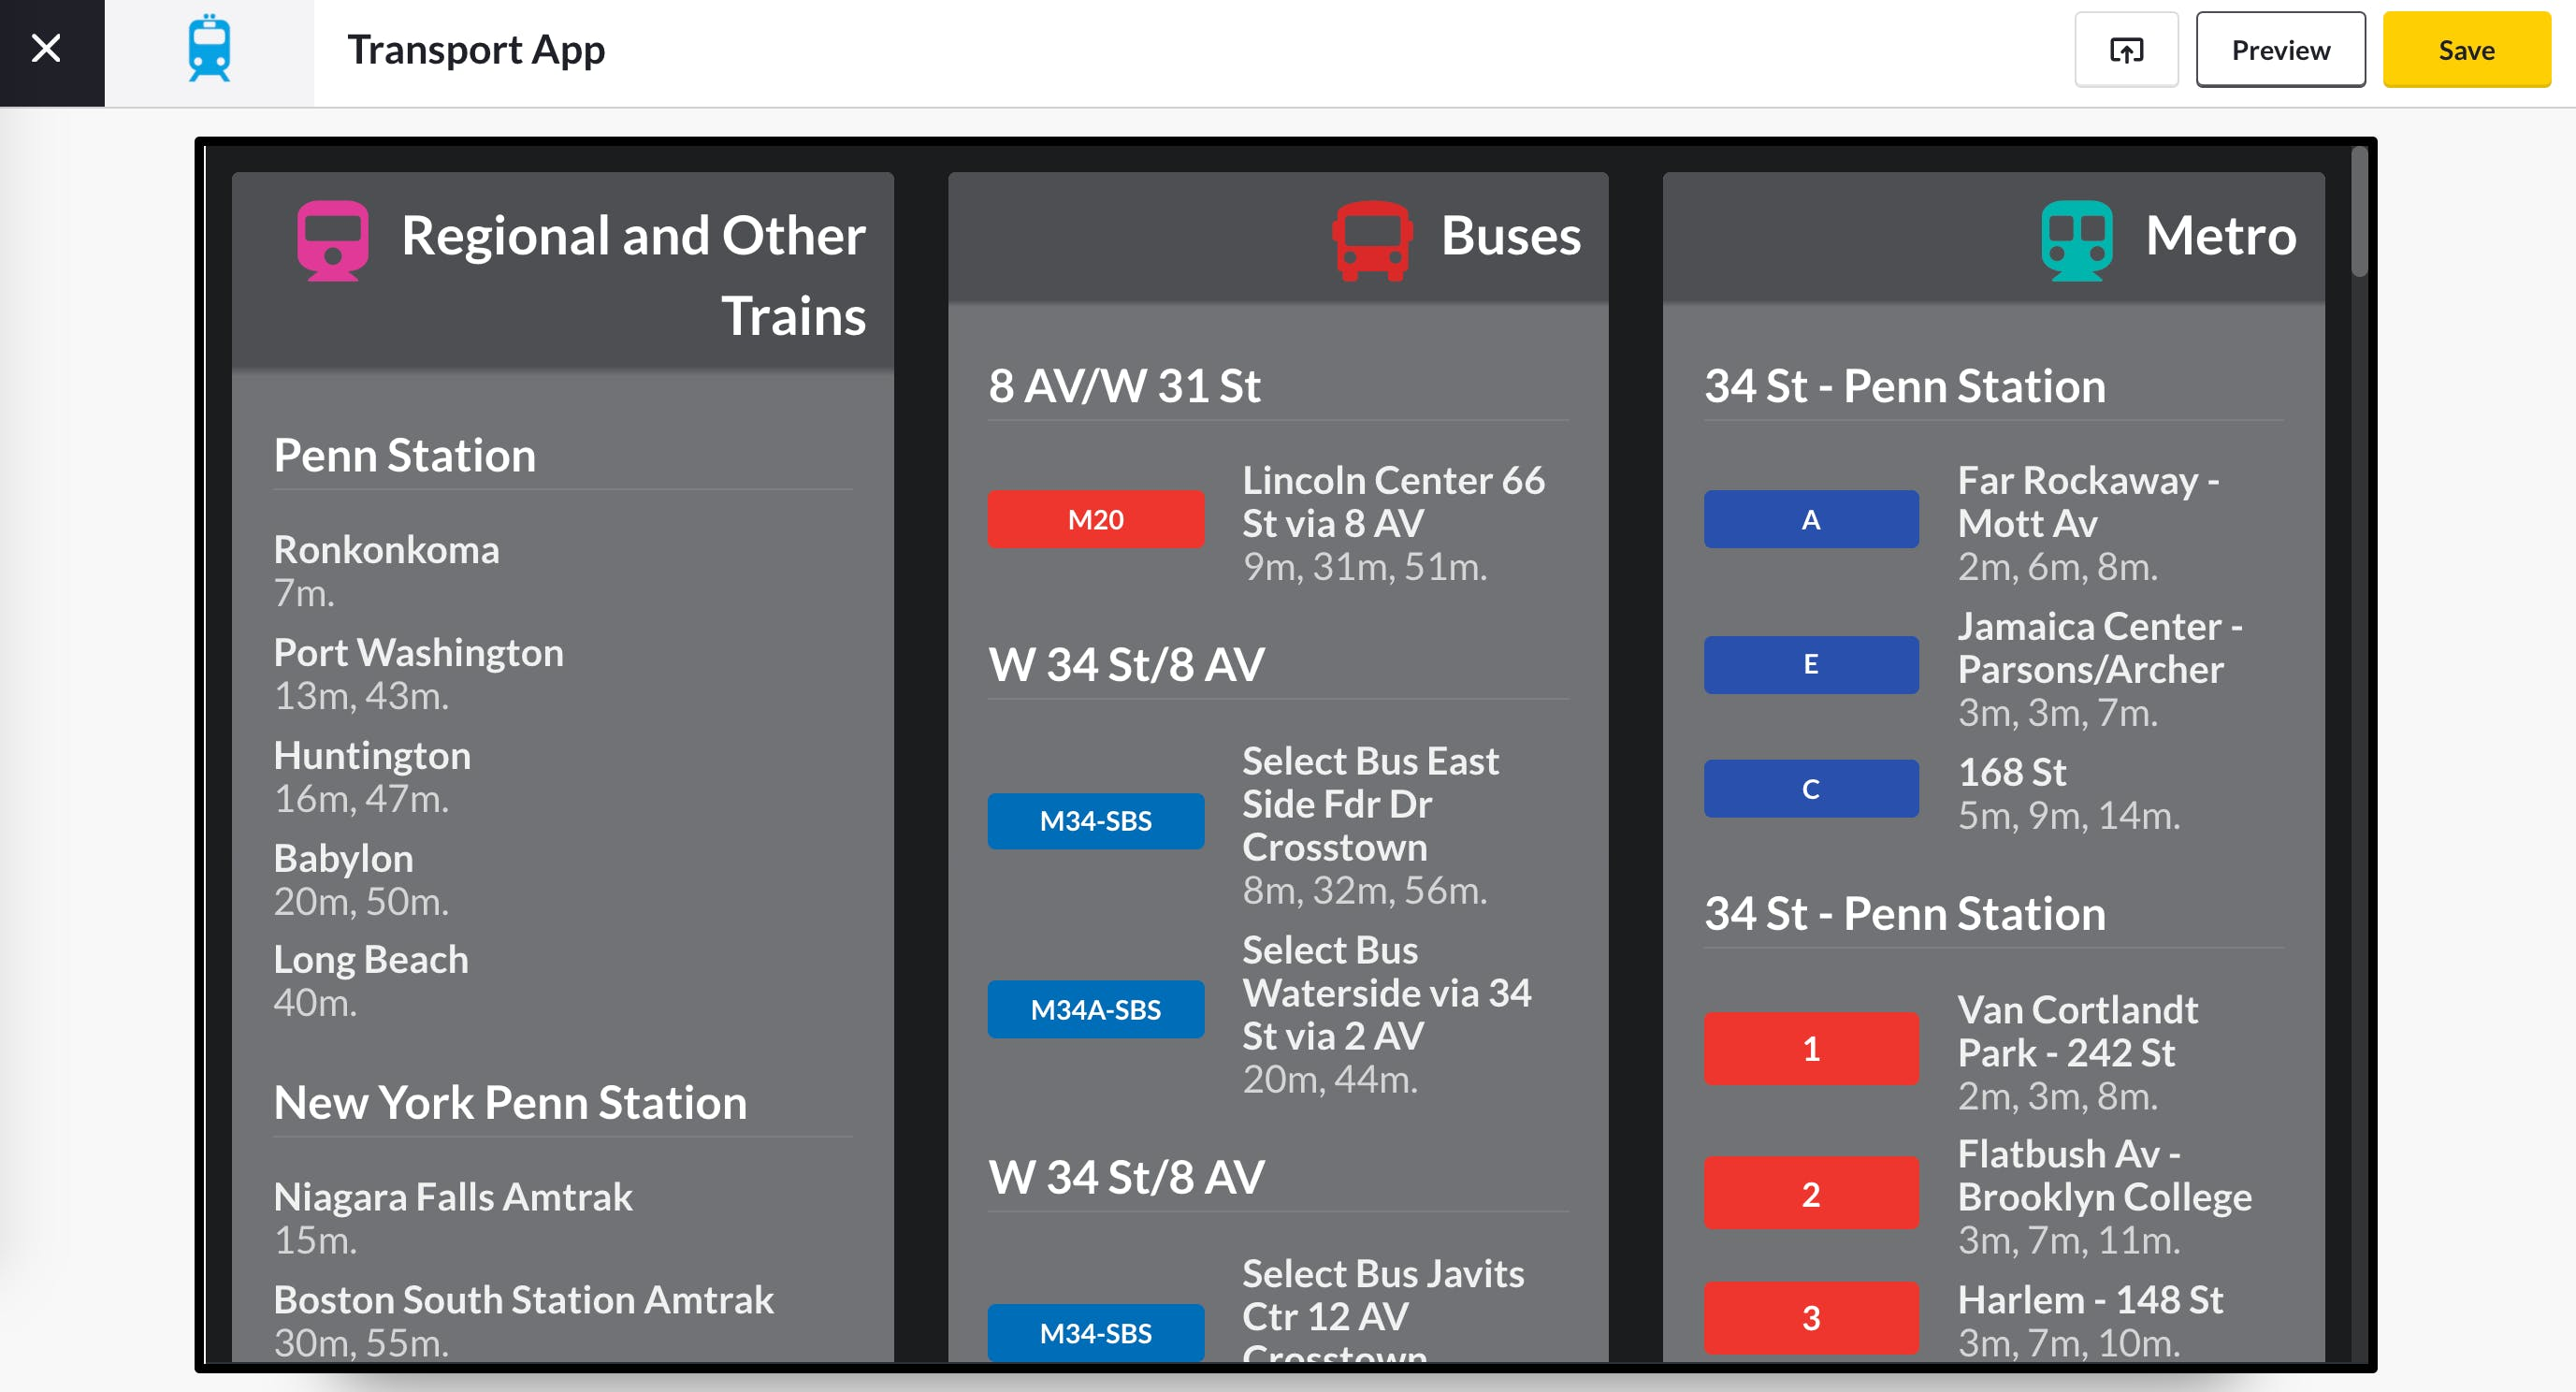 Transport App Guide - Preview 5.14.2020.png